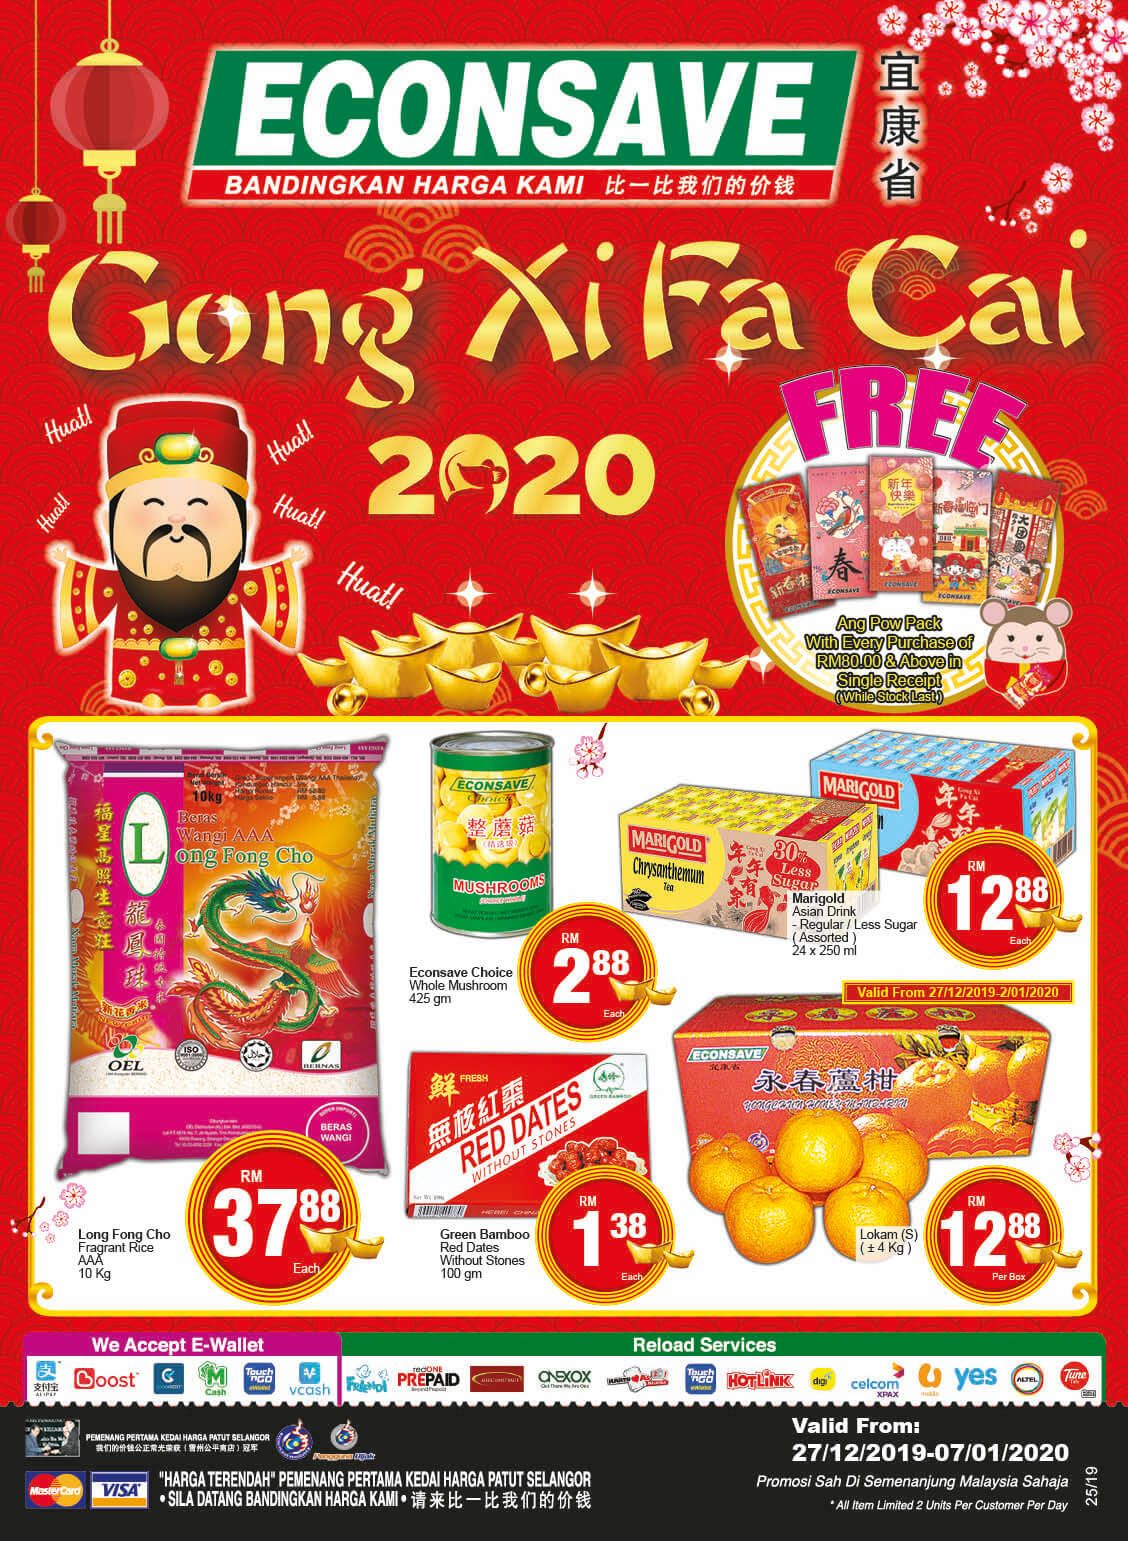 Econsave CNY Promotion Catalogue (27 December 2019 7